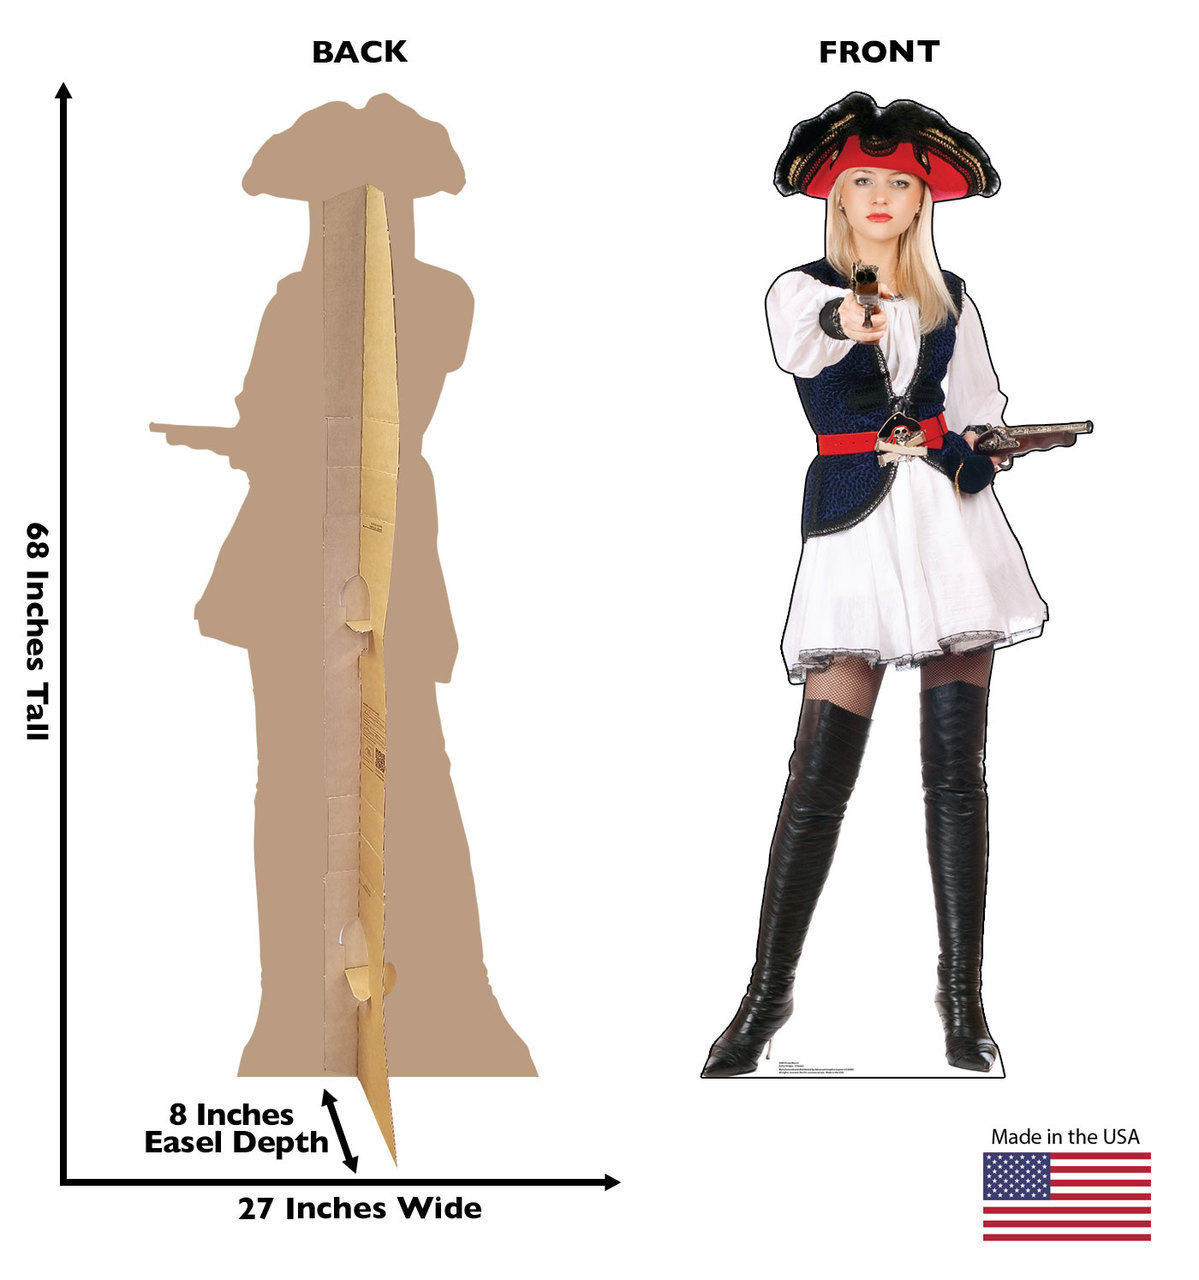 Front and back of standee with dimensions